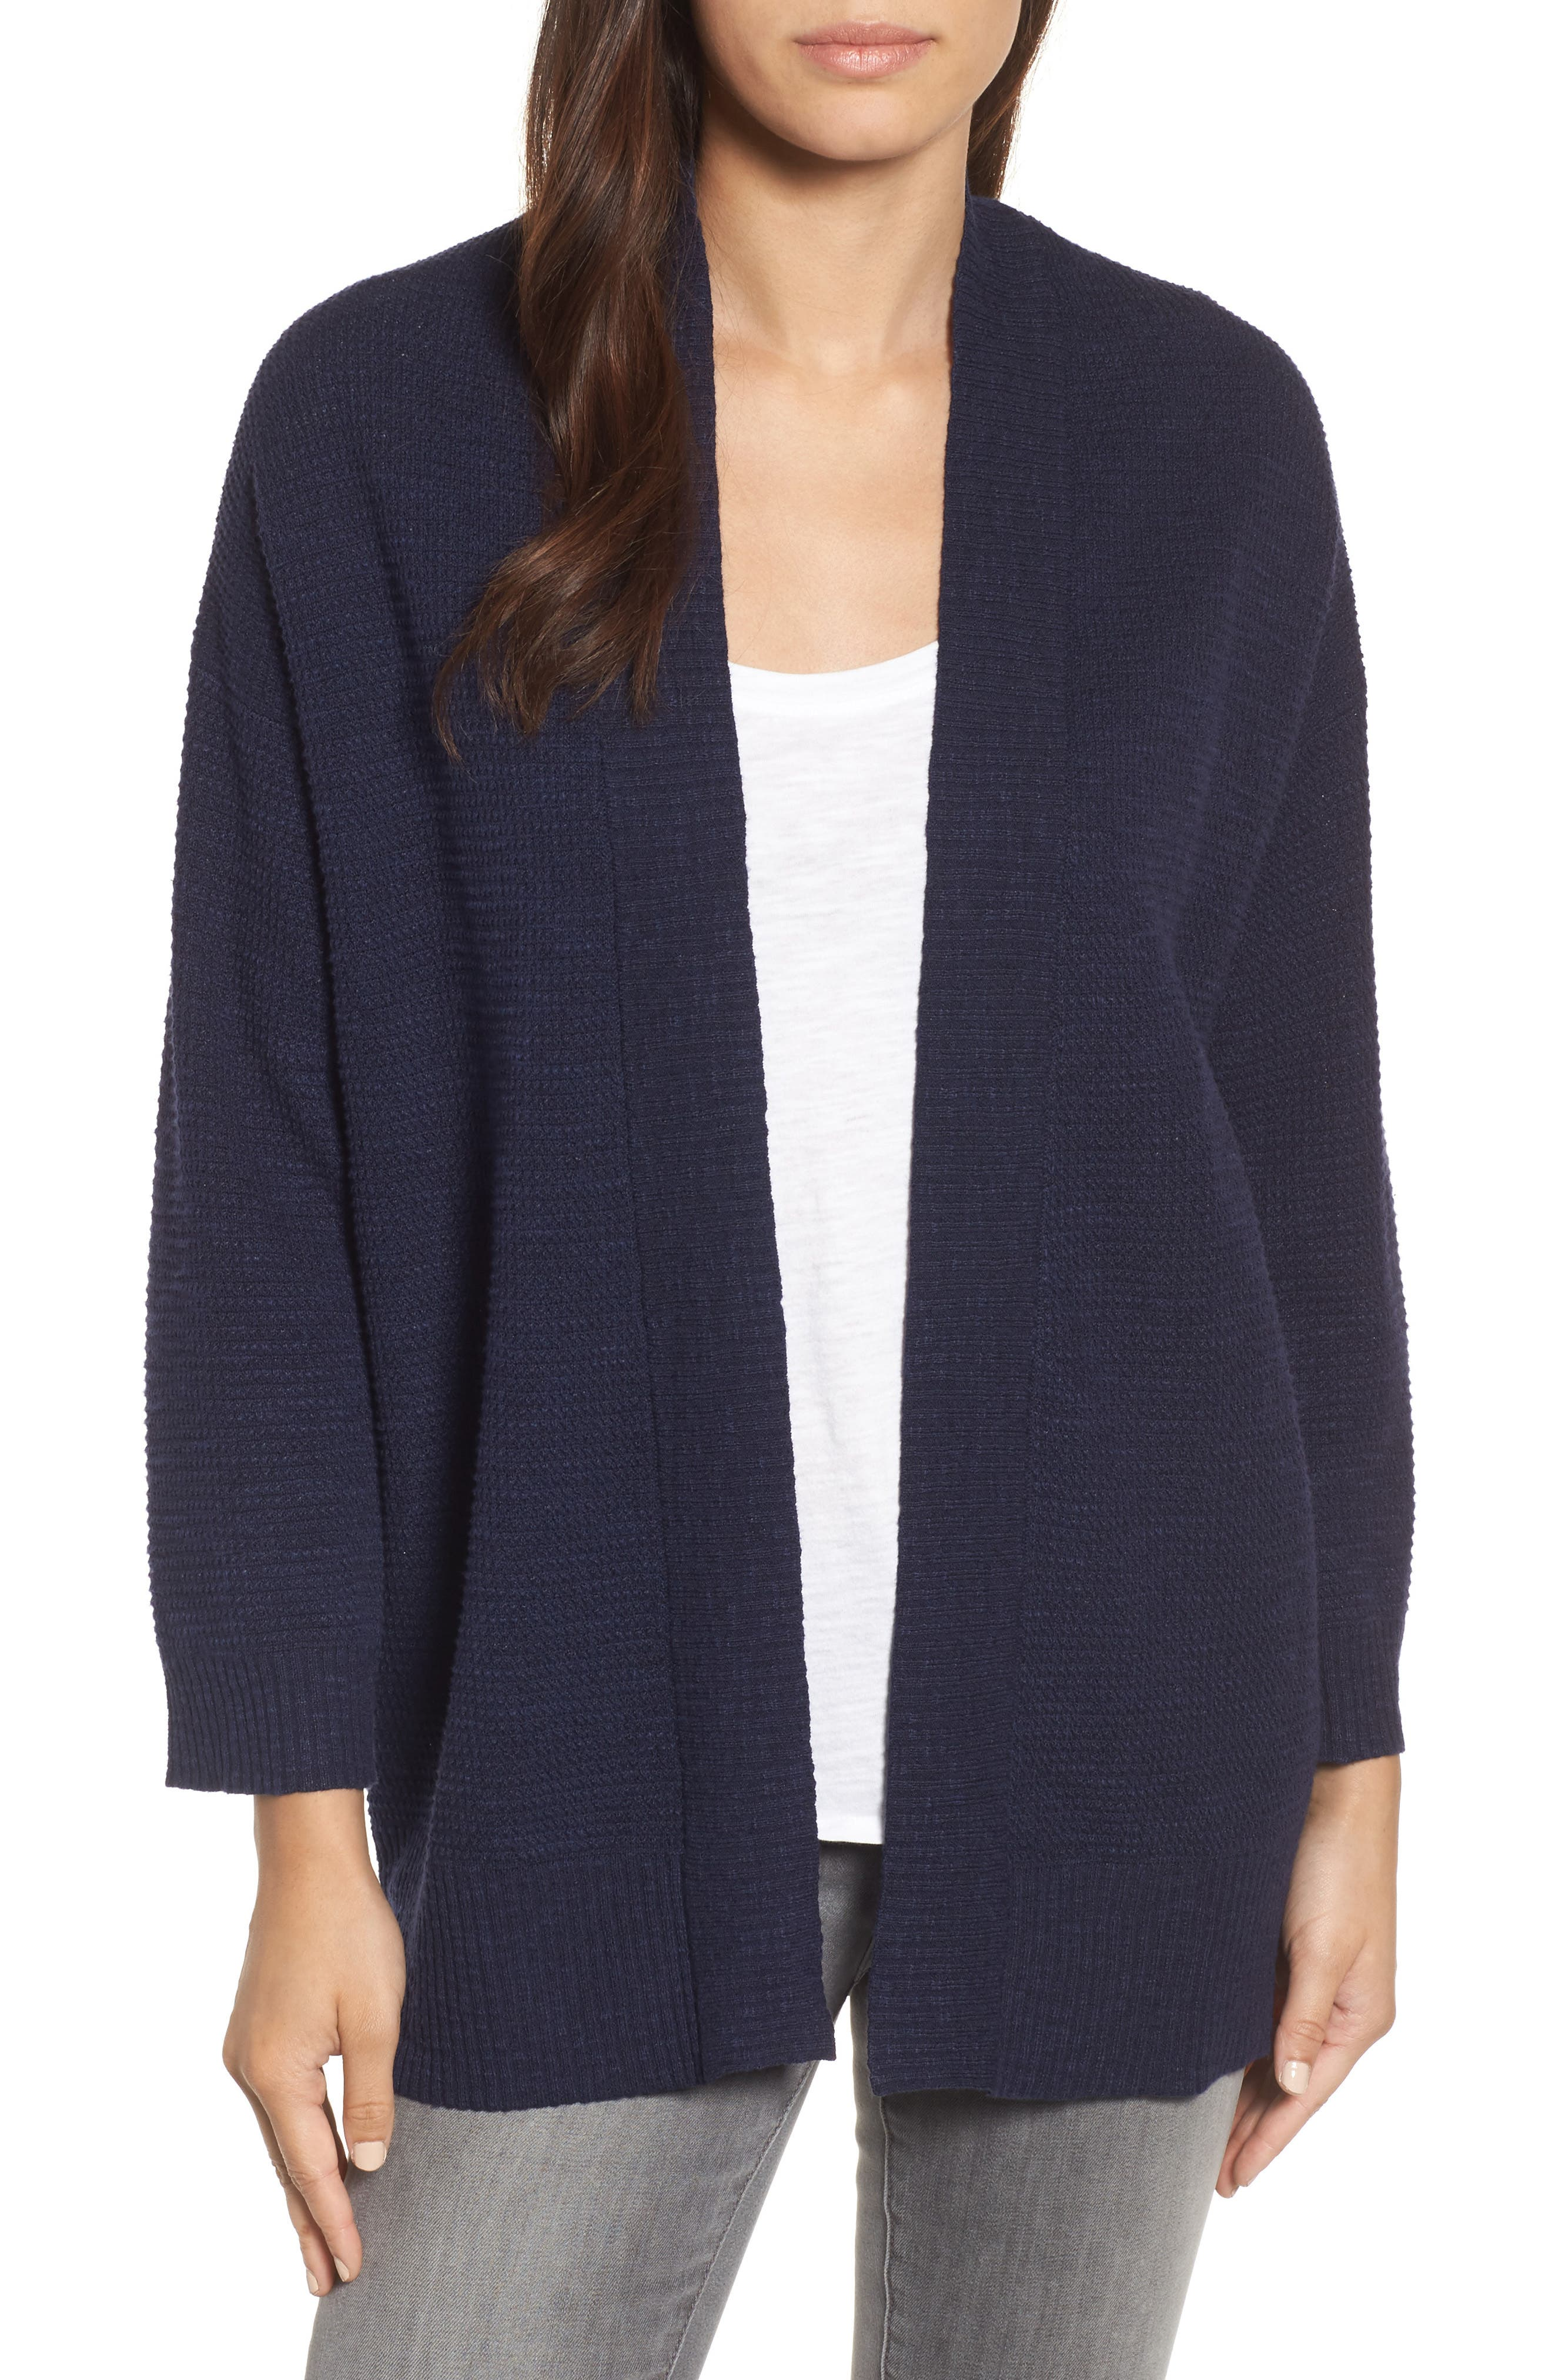 Alternate Image 1 Selected - Eileen Fisher Organic Linen & Cotton Cardigan